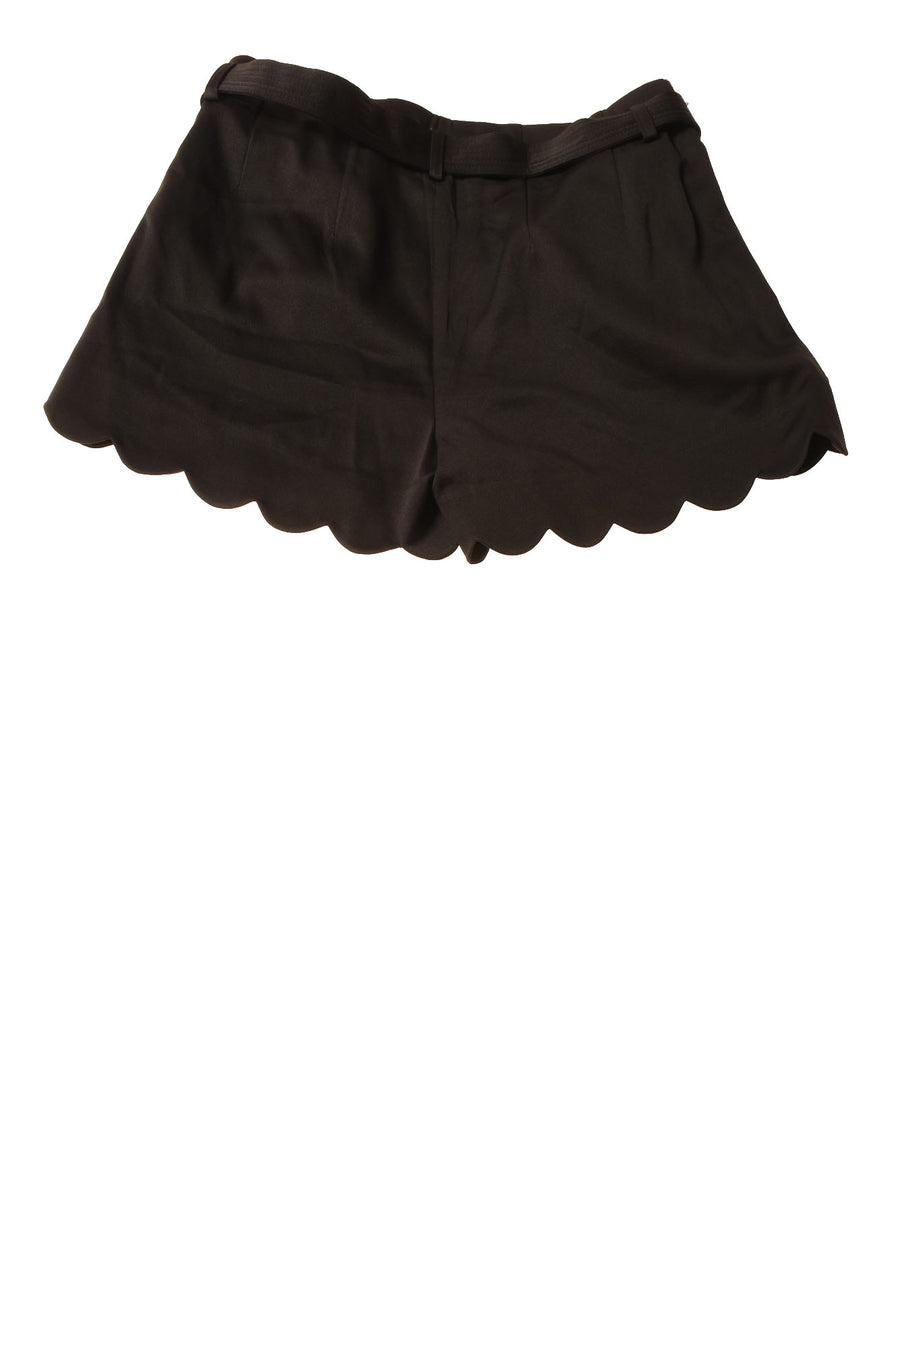 NEW Hyfve Women's Skort Medium Black